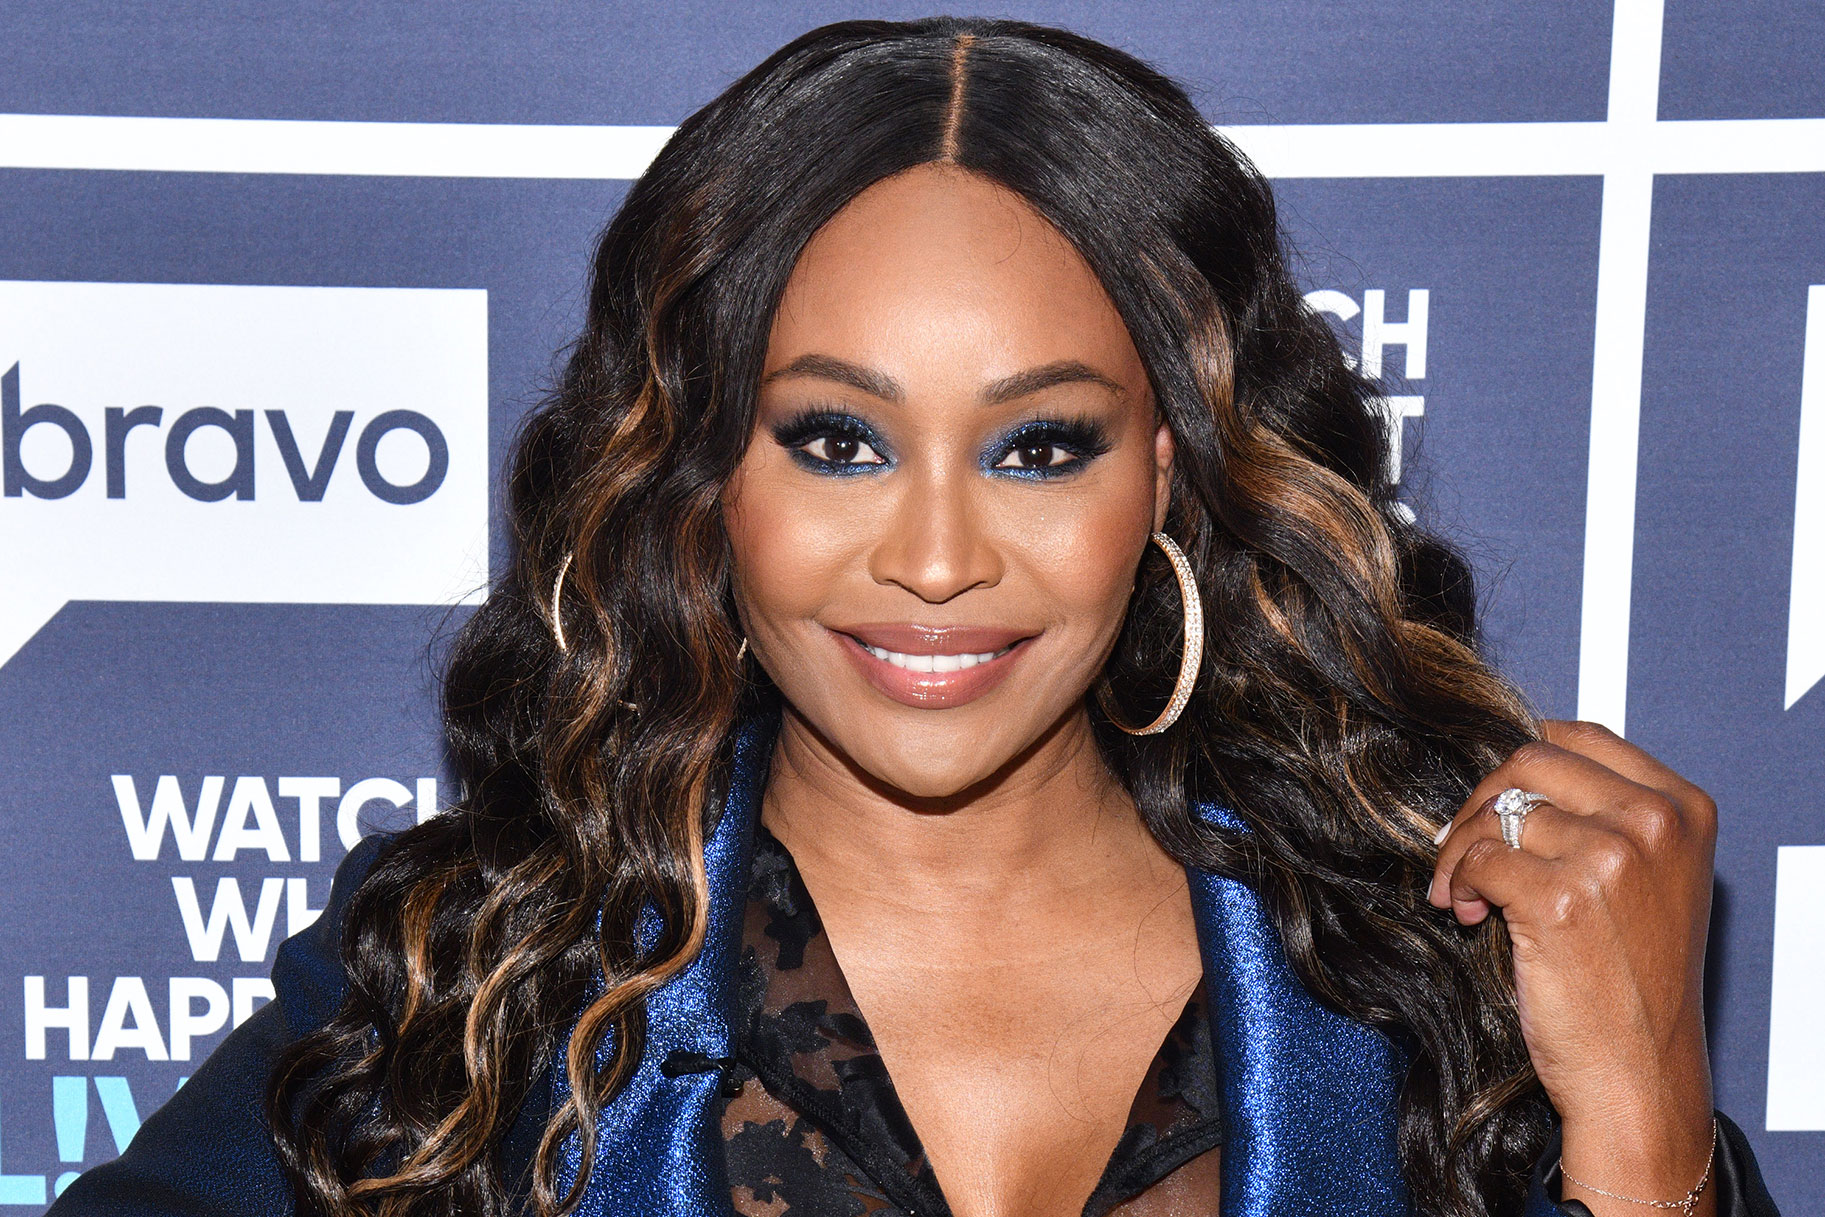 Cynthia Bailey Looks Drop-Dead Gorgeous In This Photo - Fans Are In Awe